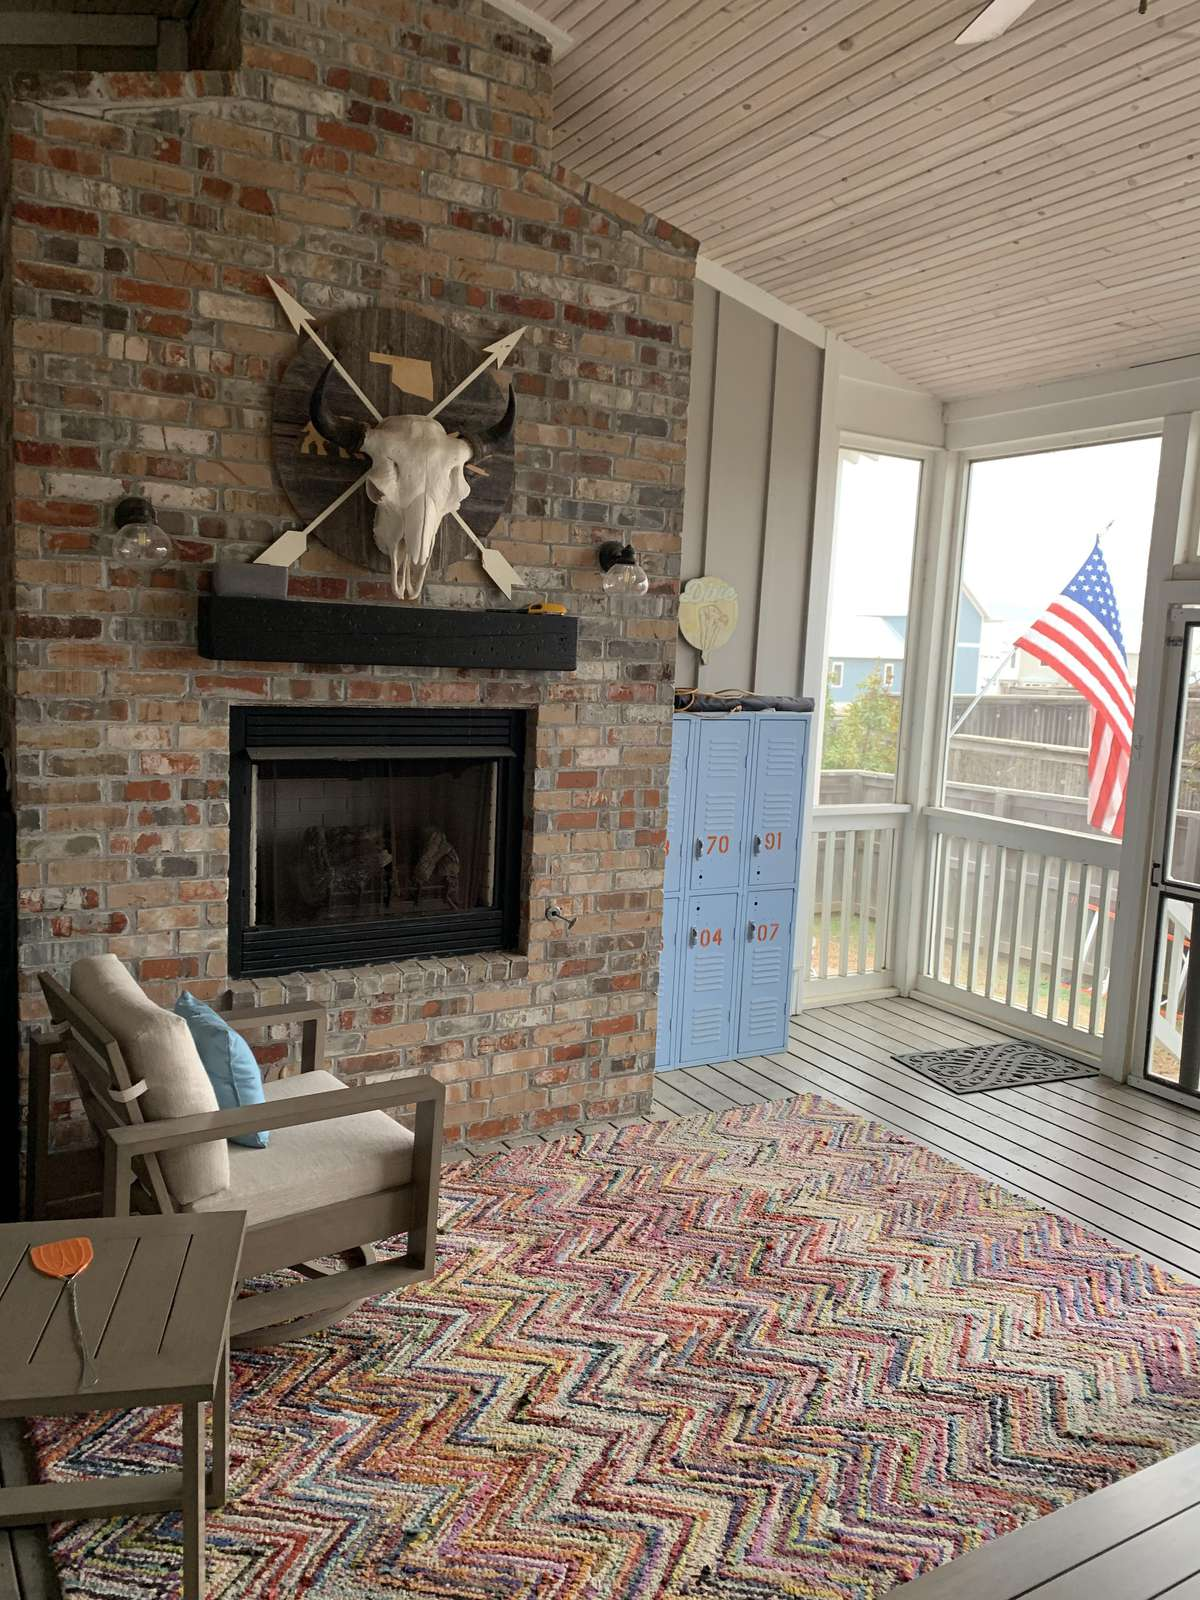 Screened In porch with fireplace - perfect place for enjoying the evening